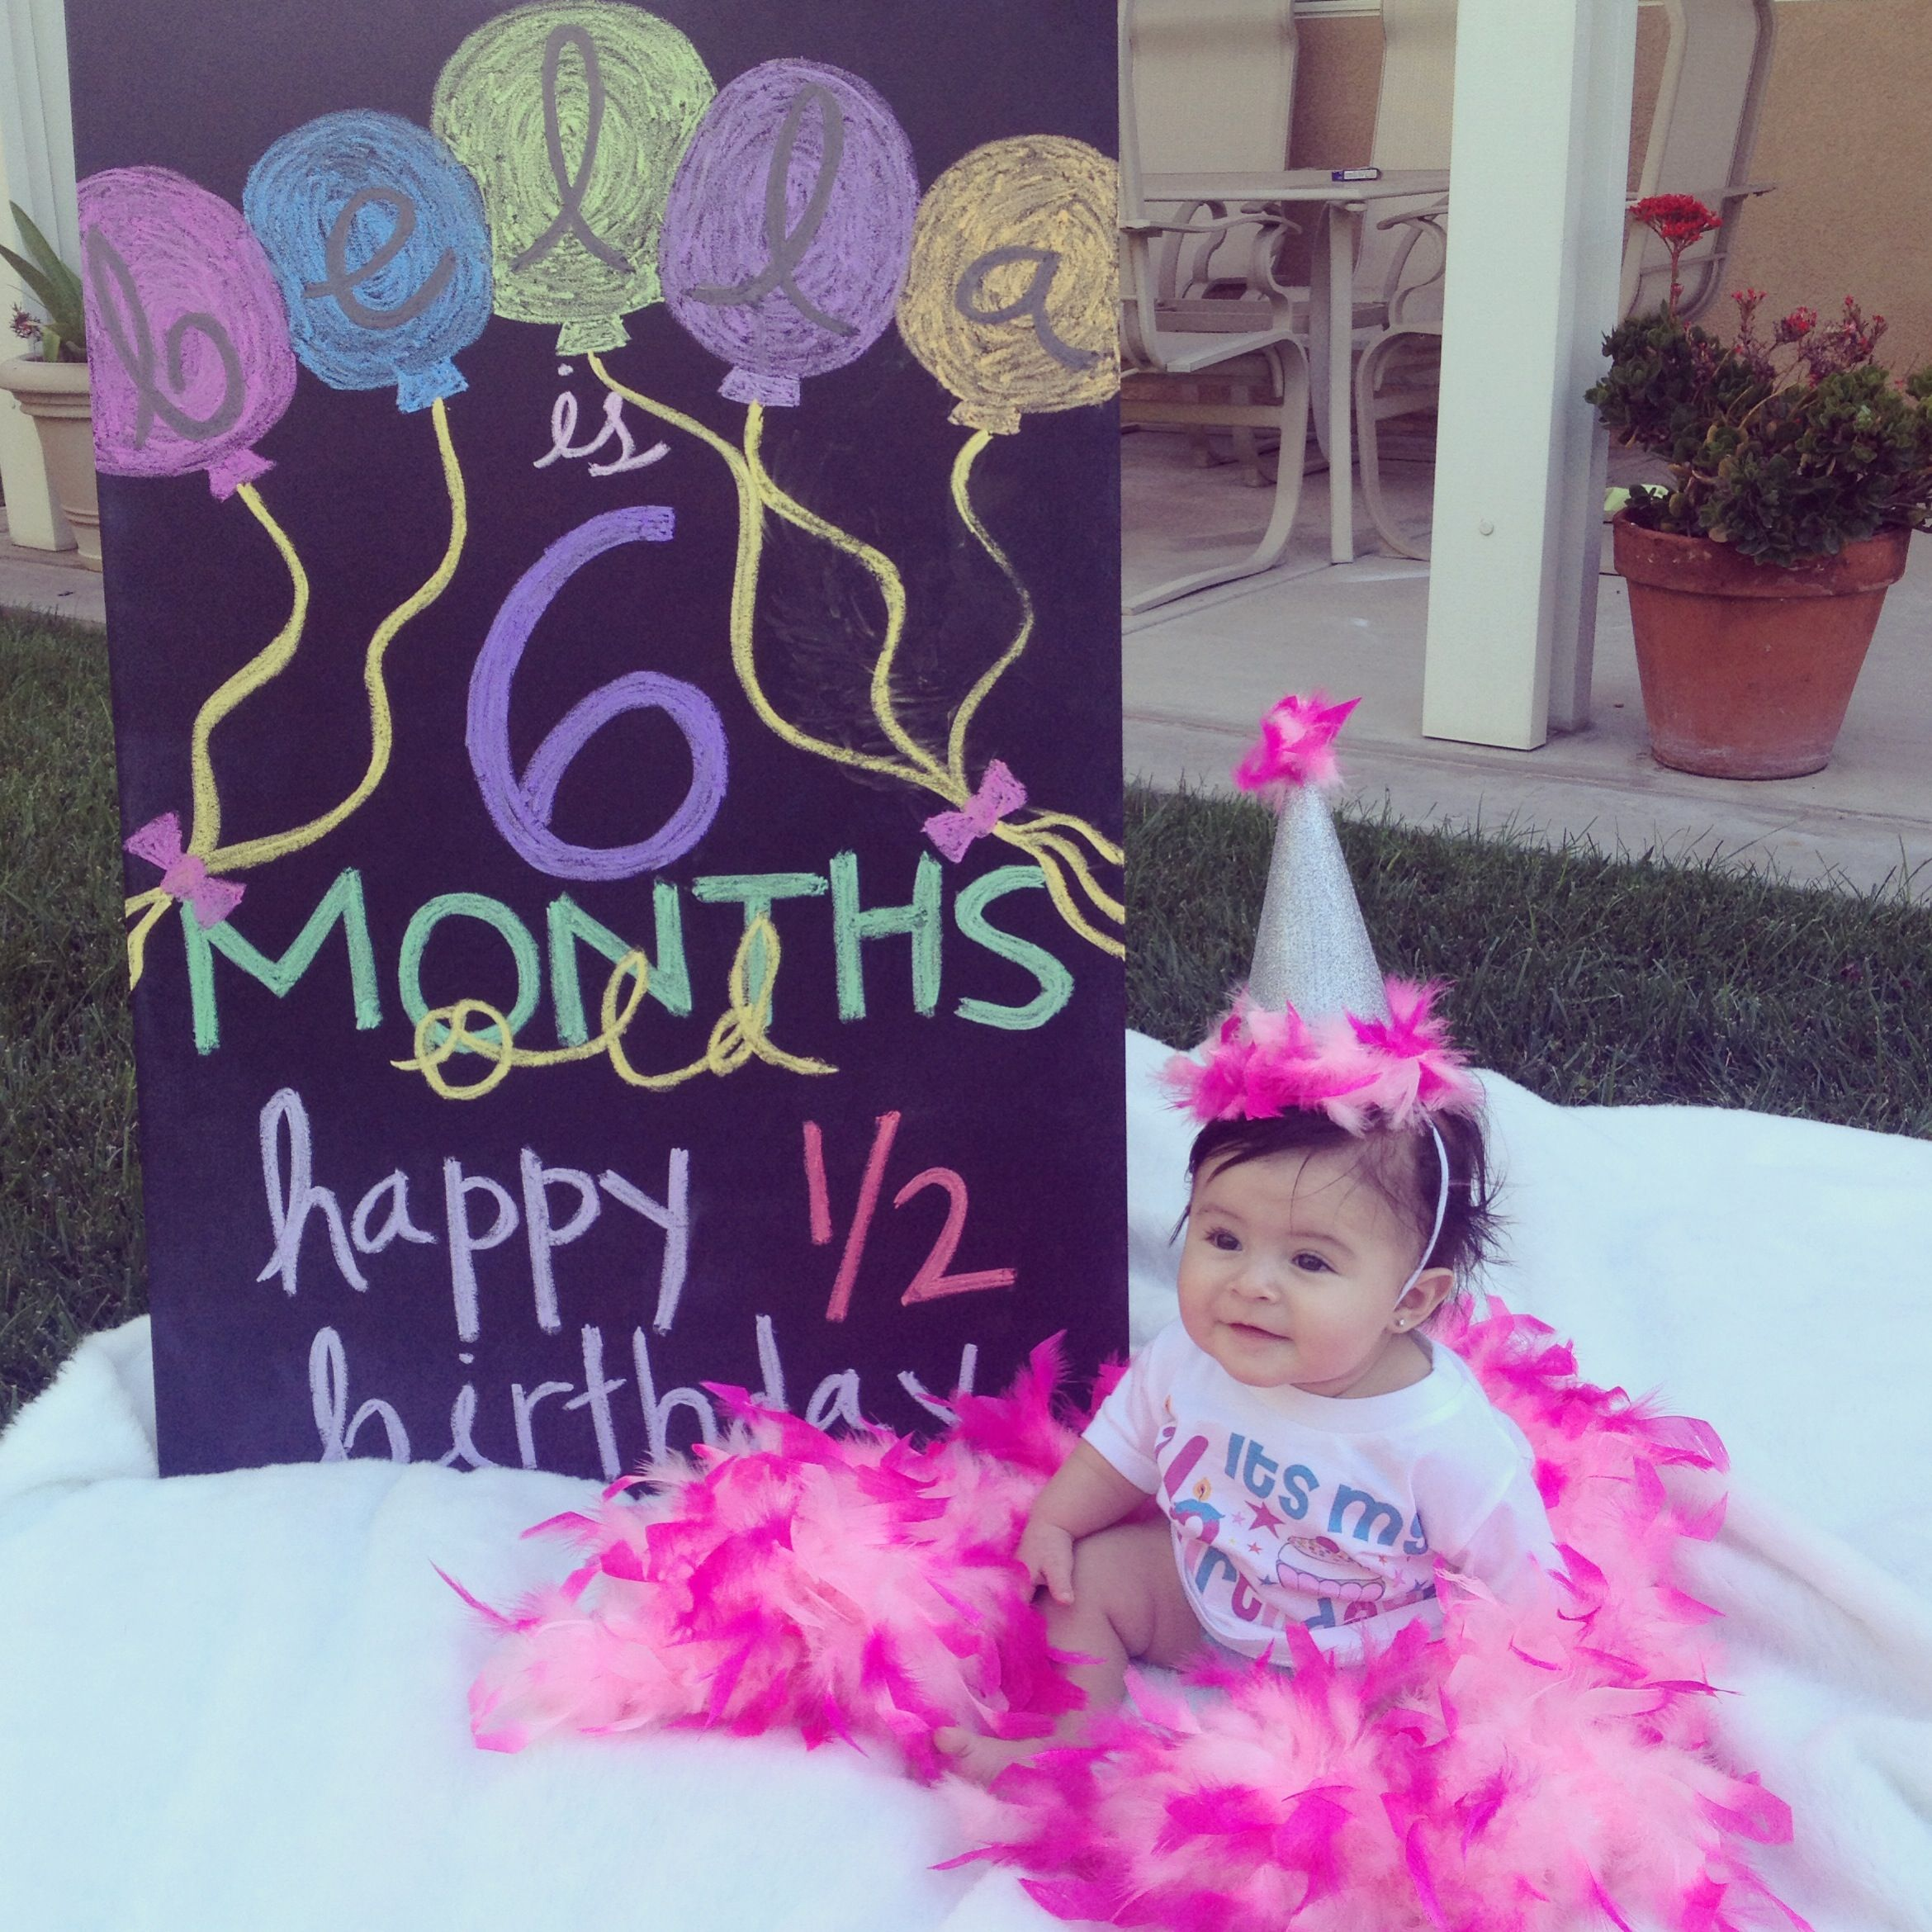 My Niece Turned 6 Months. OF COURSE Her Half Birthday Was A Reason To Celebrate! I Made Her